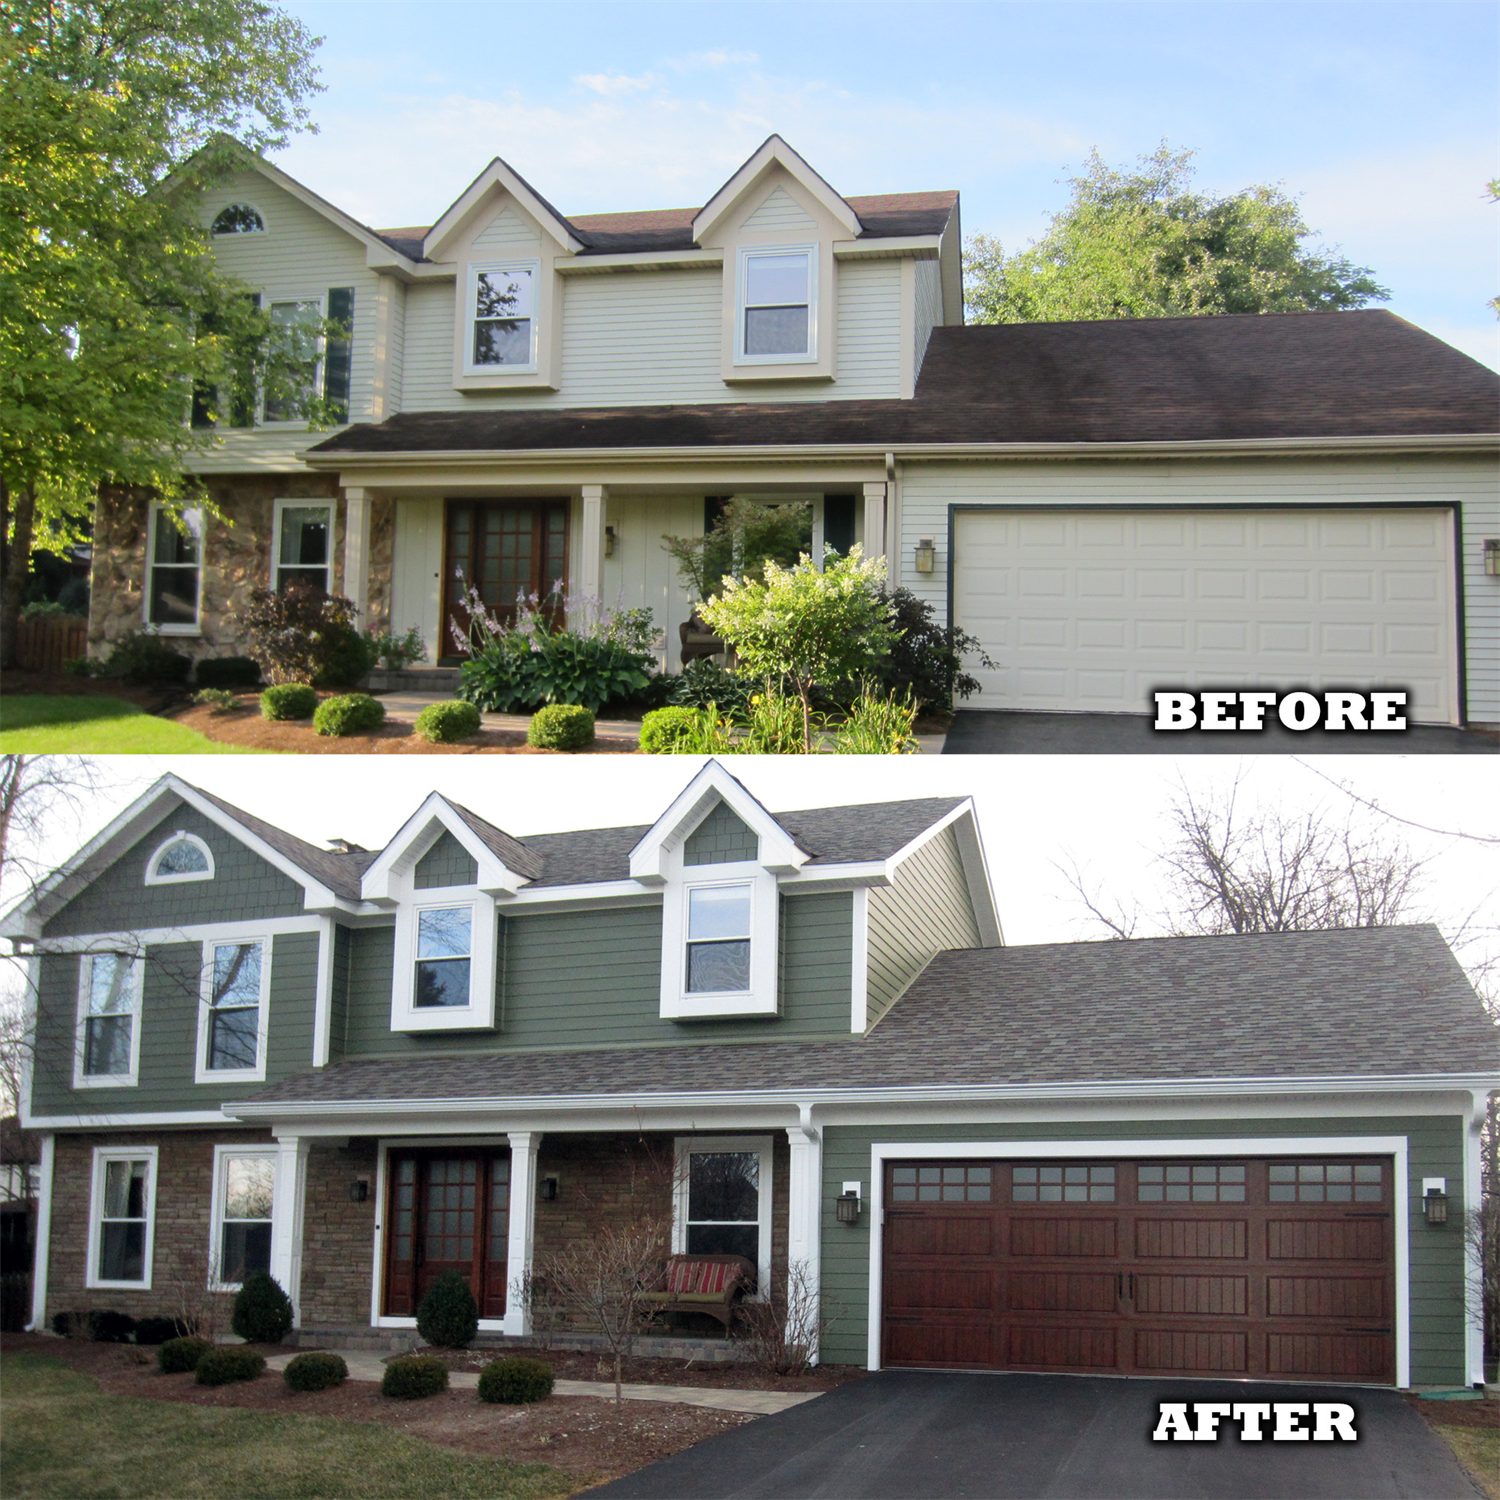 Design Ideas Photo Showcase Home Exterior Makeover Vinyl Siding House House Paint Exterior